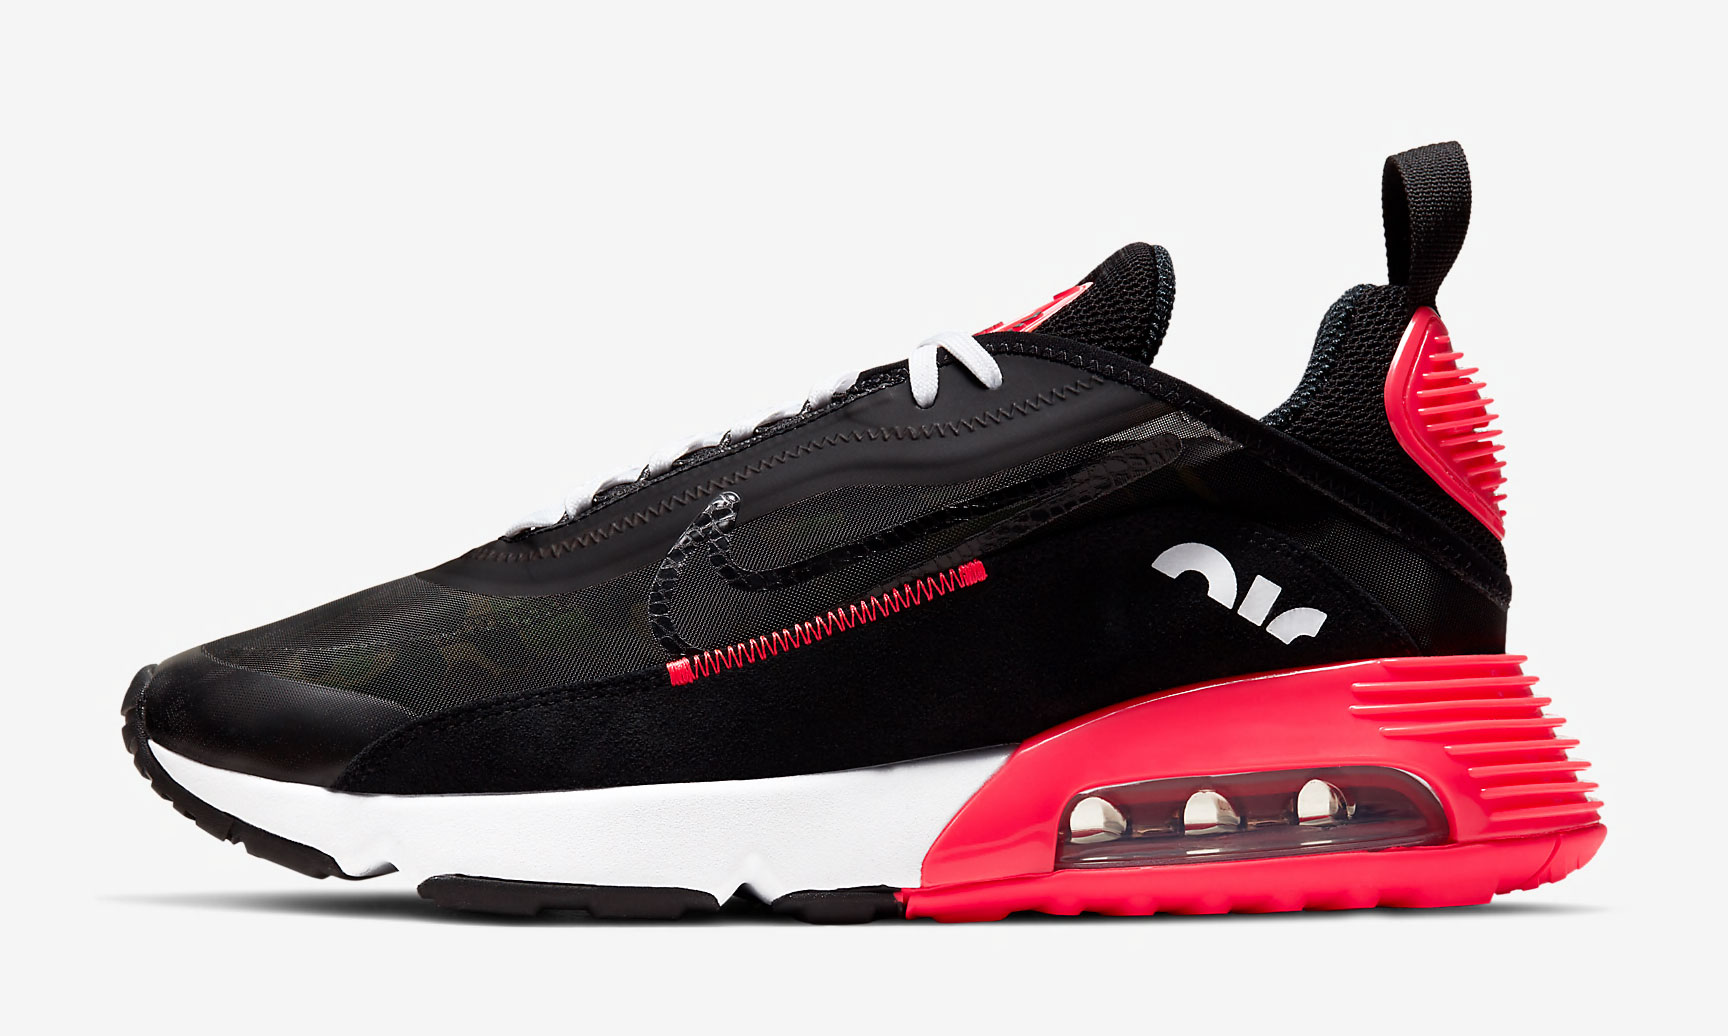 nike-air-max-2090-infrared-duck-camo-release-date-2